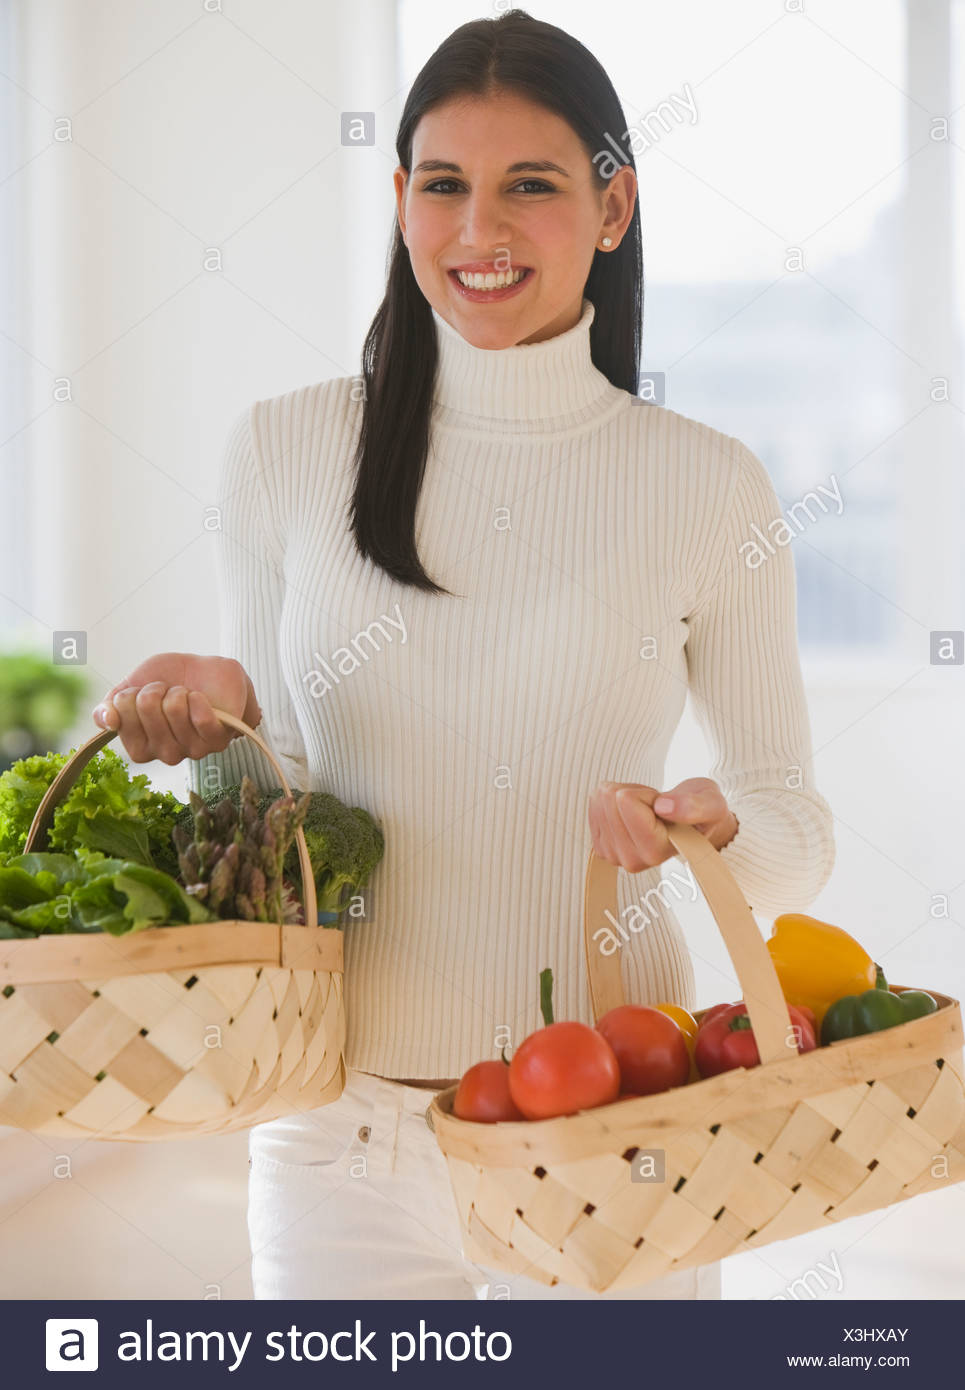 Woman carrying baskets of fruit and vegetables - Stock Image